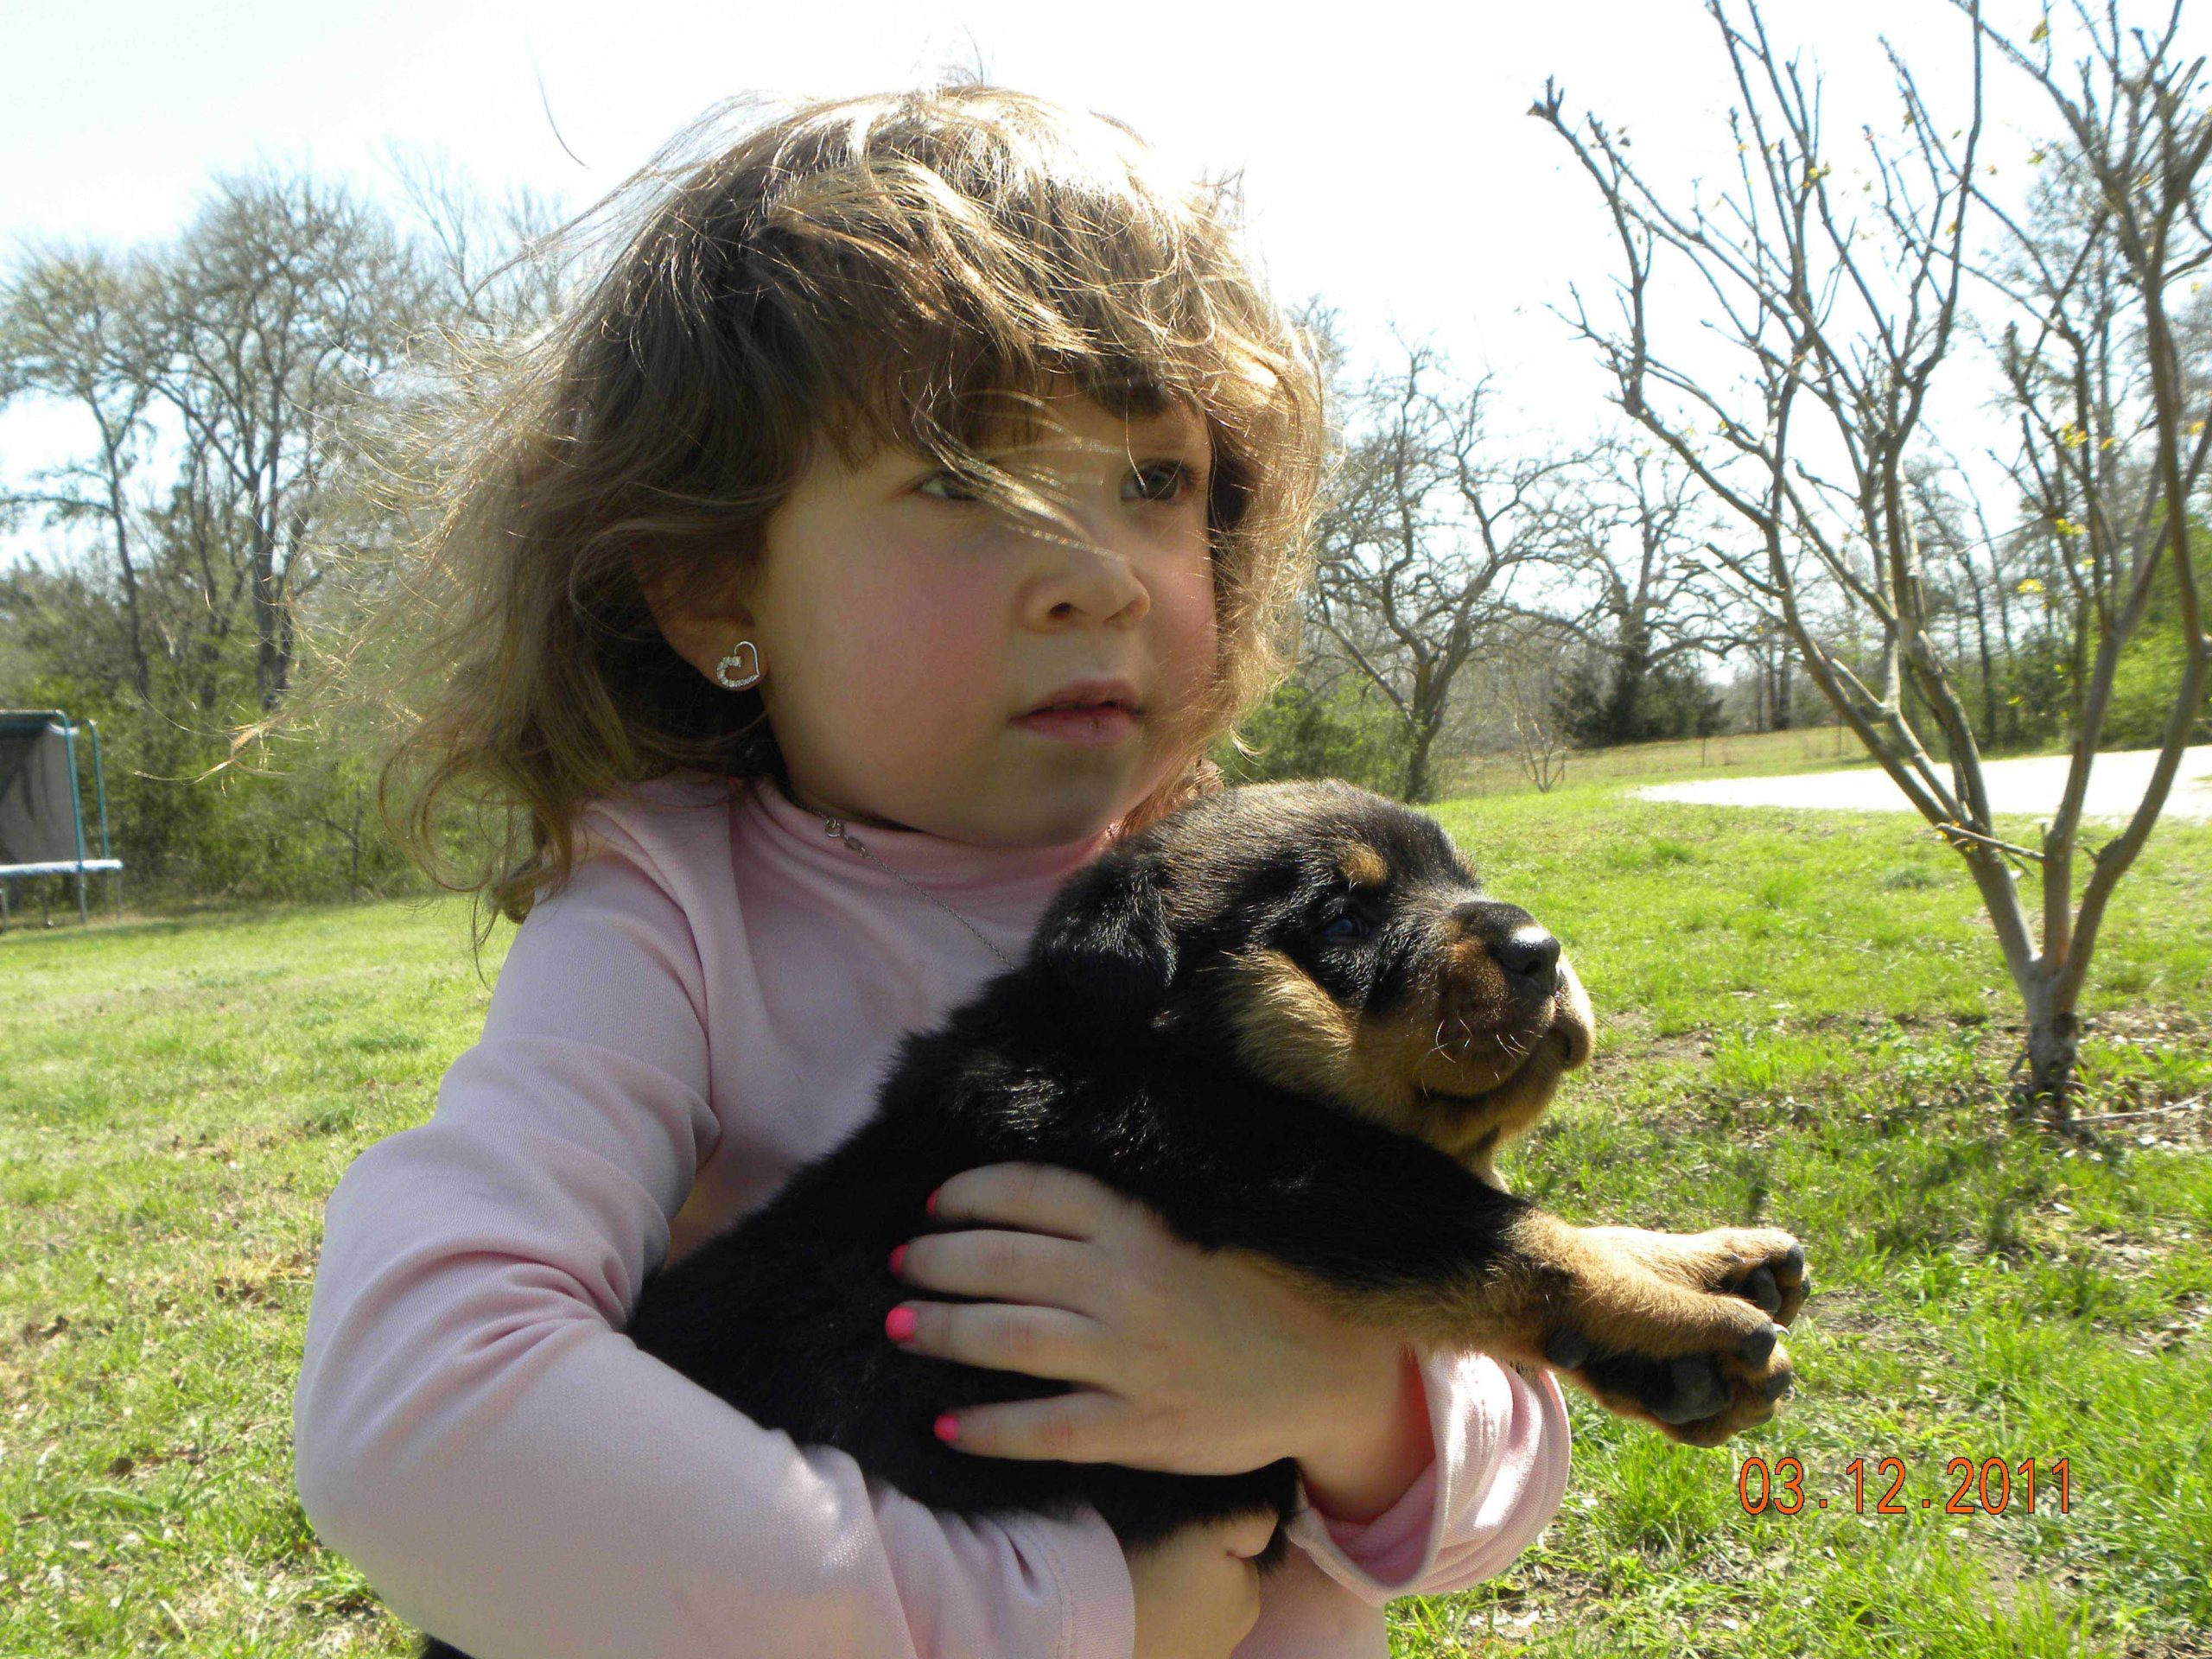 Puppy Mill Rescue By Houston SPCA Yields 230 Rottweilers + Exotics